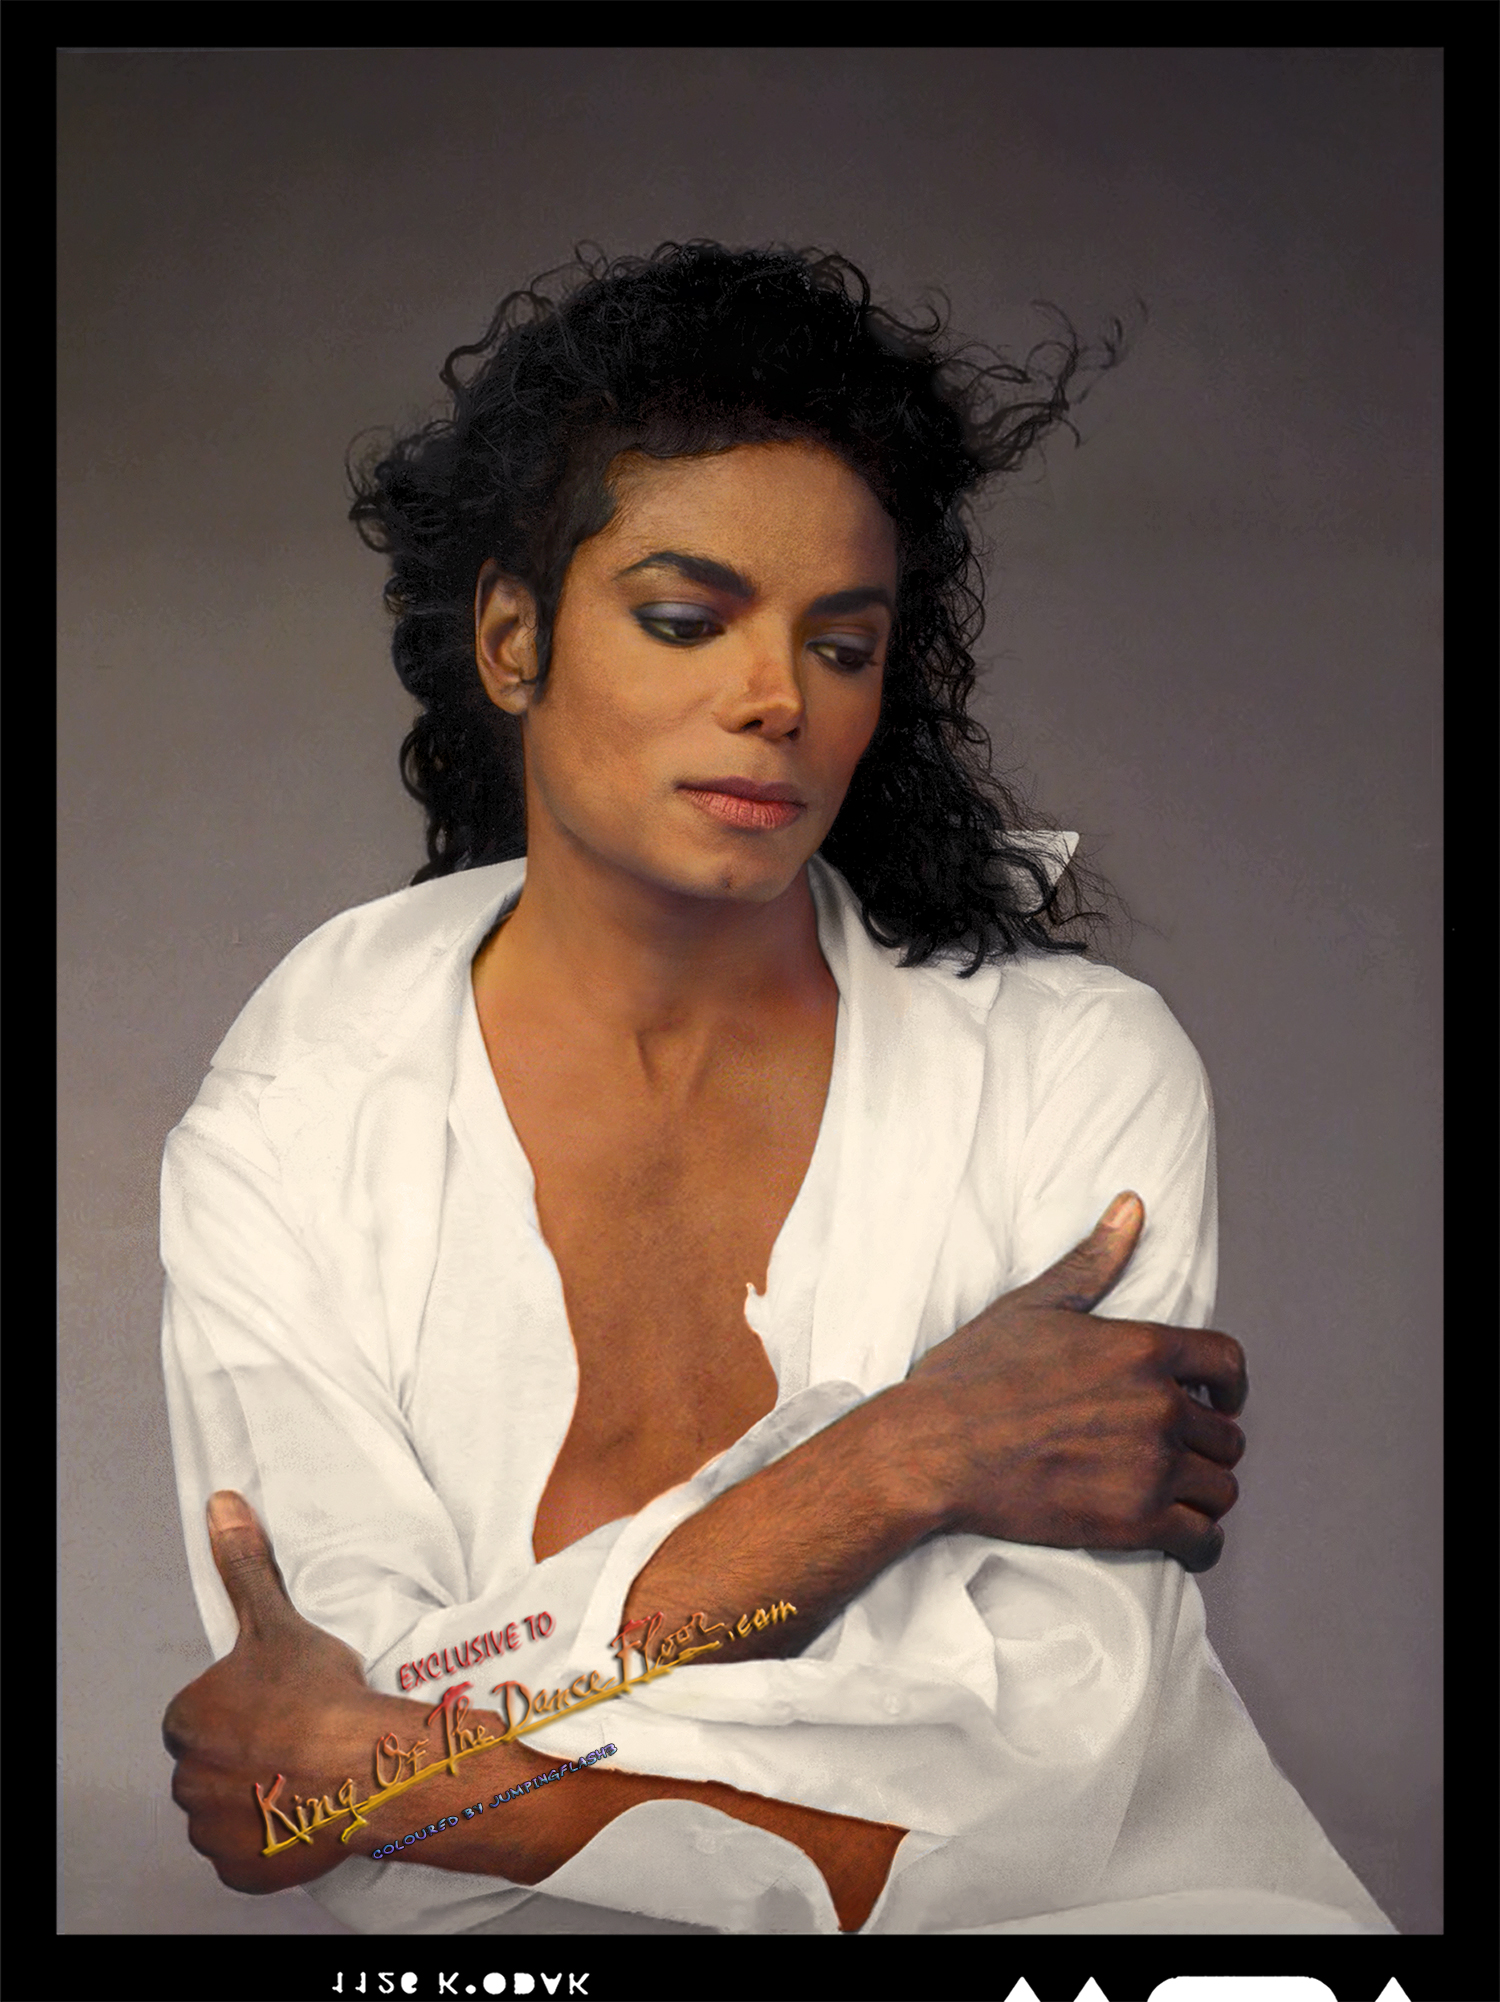 MichaelJackson by  Annie Leibovitz Photoshoot 1989 - michael-jackson photo